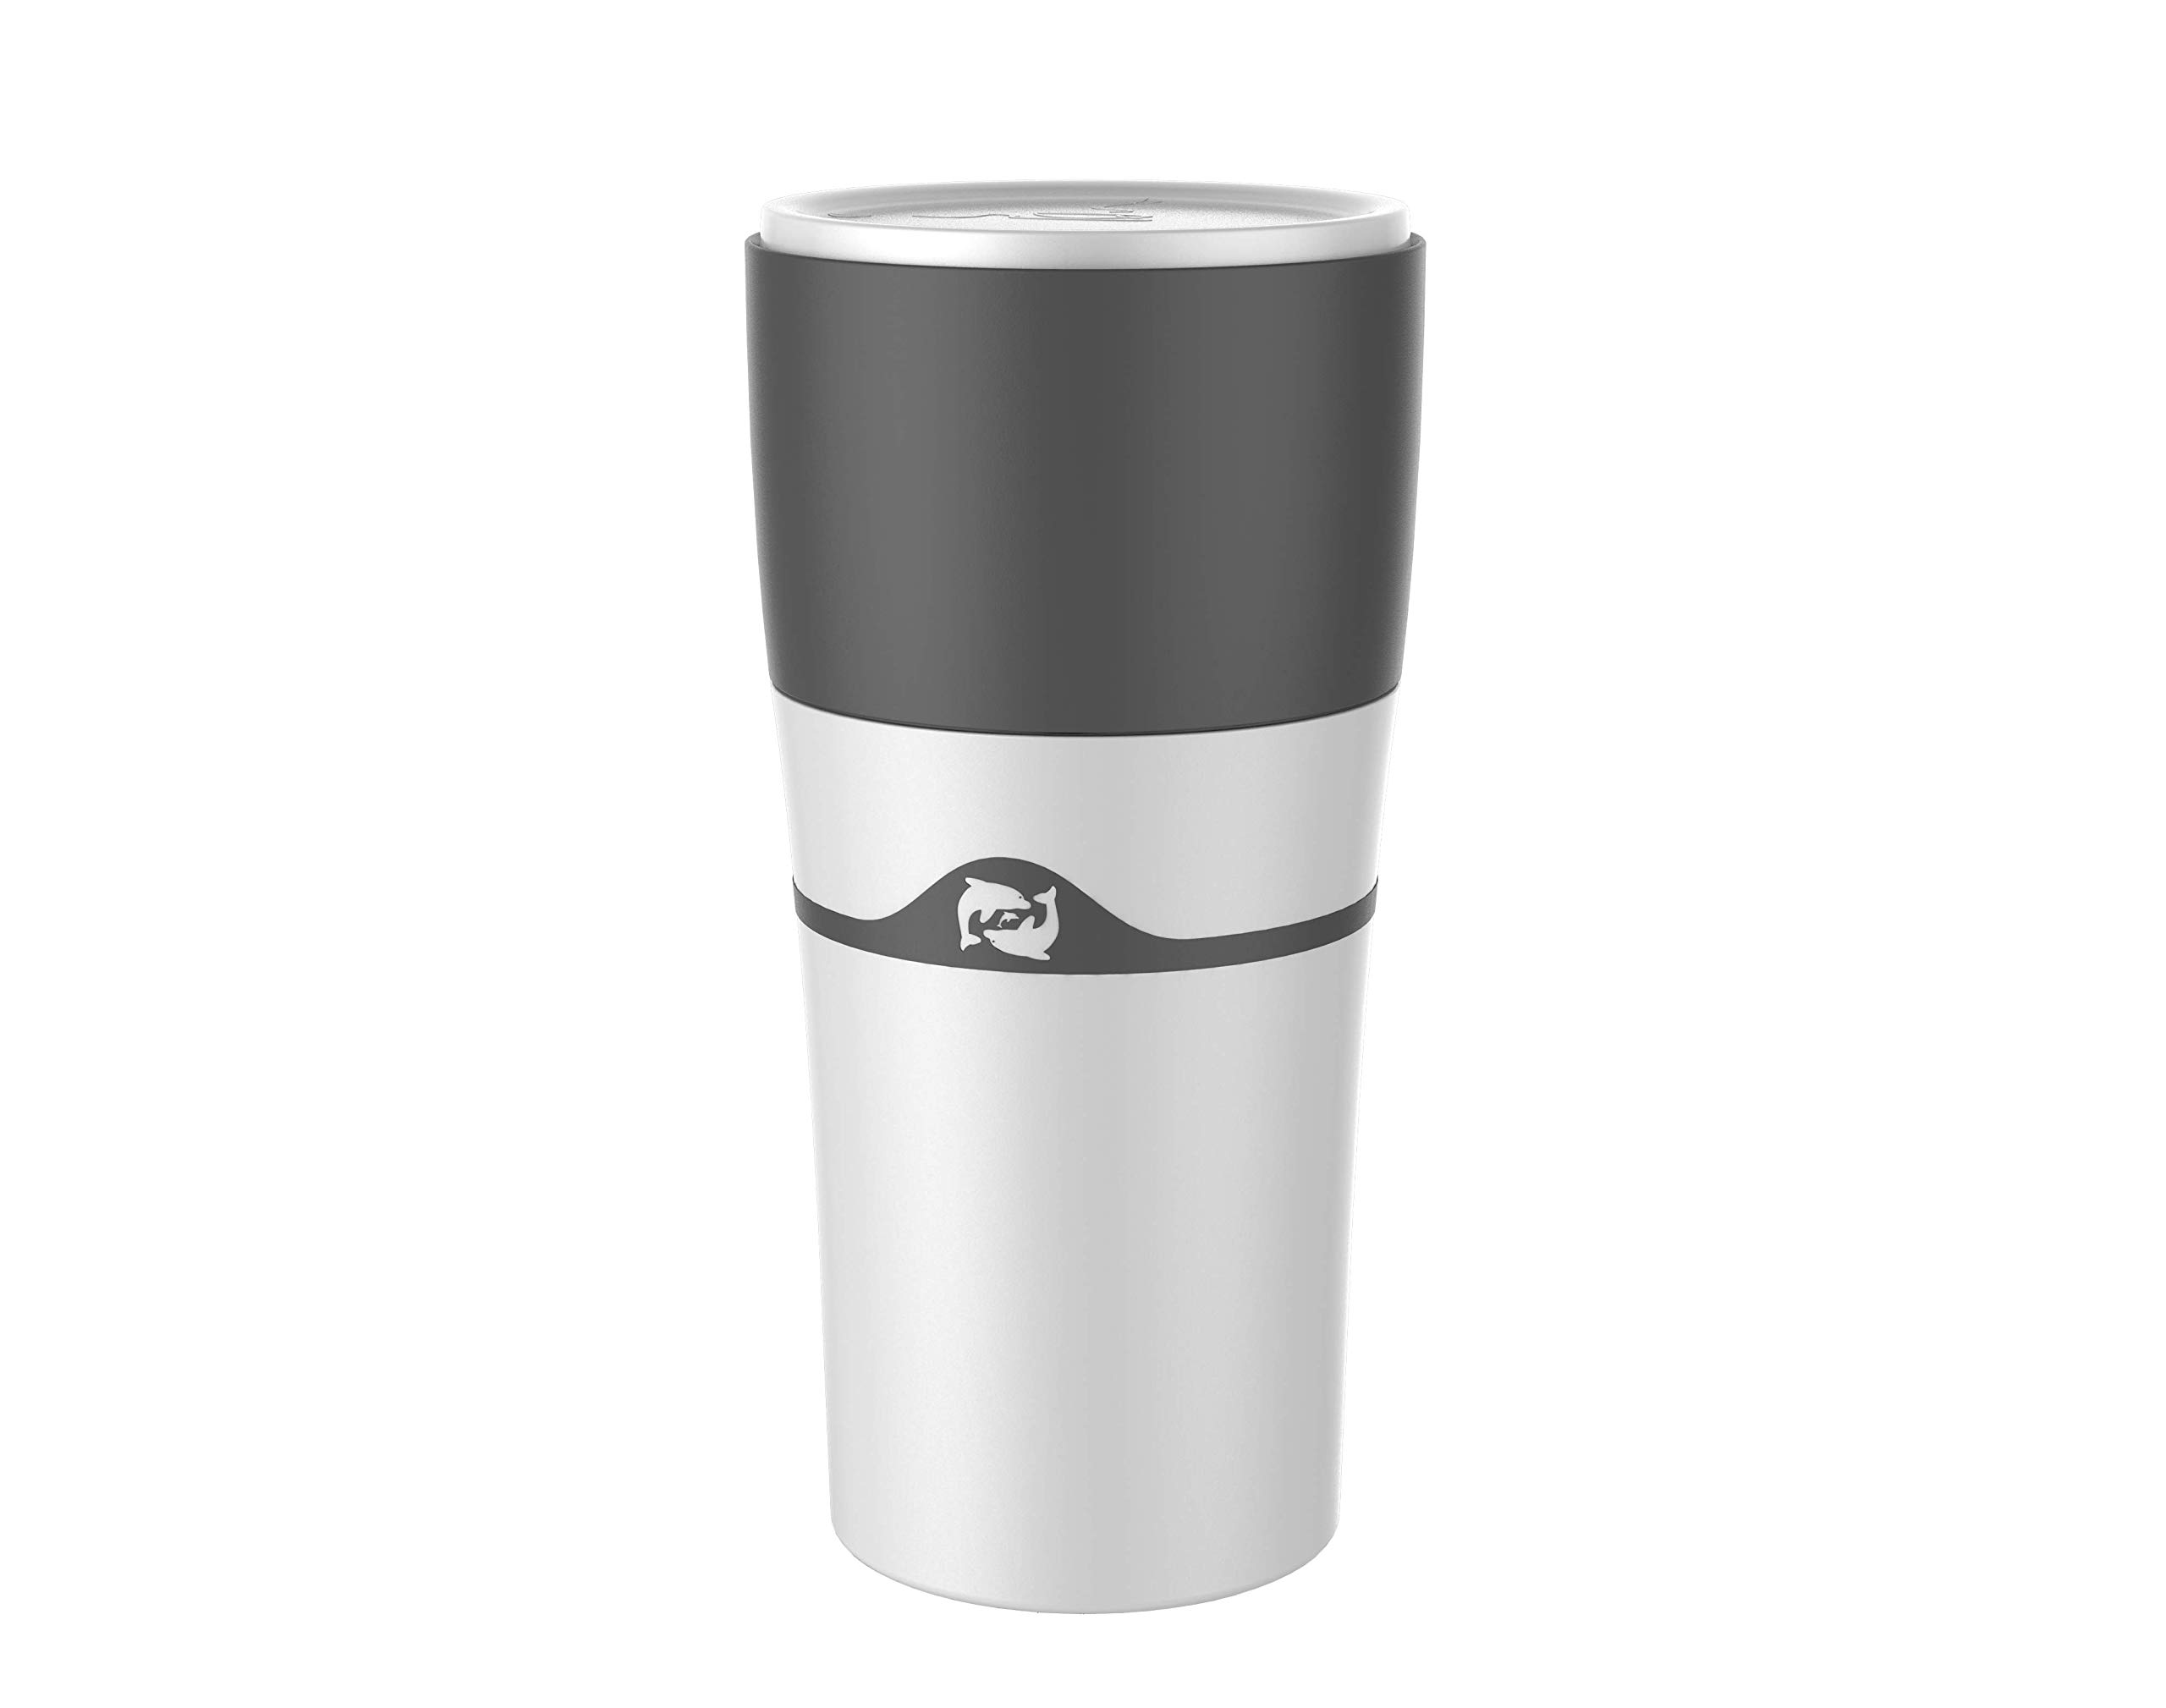 i Cafilas Cold Brew Coffee Makers Portable Drip Coffee Maker Travel Mug,Compatible with Refillable K Pods& Single-Serve Capsules,Portable Manual For Office Camping Hot and Cold Coffee Brewer (White)